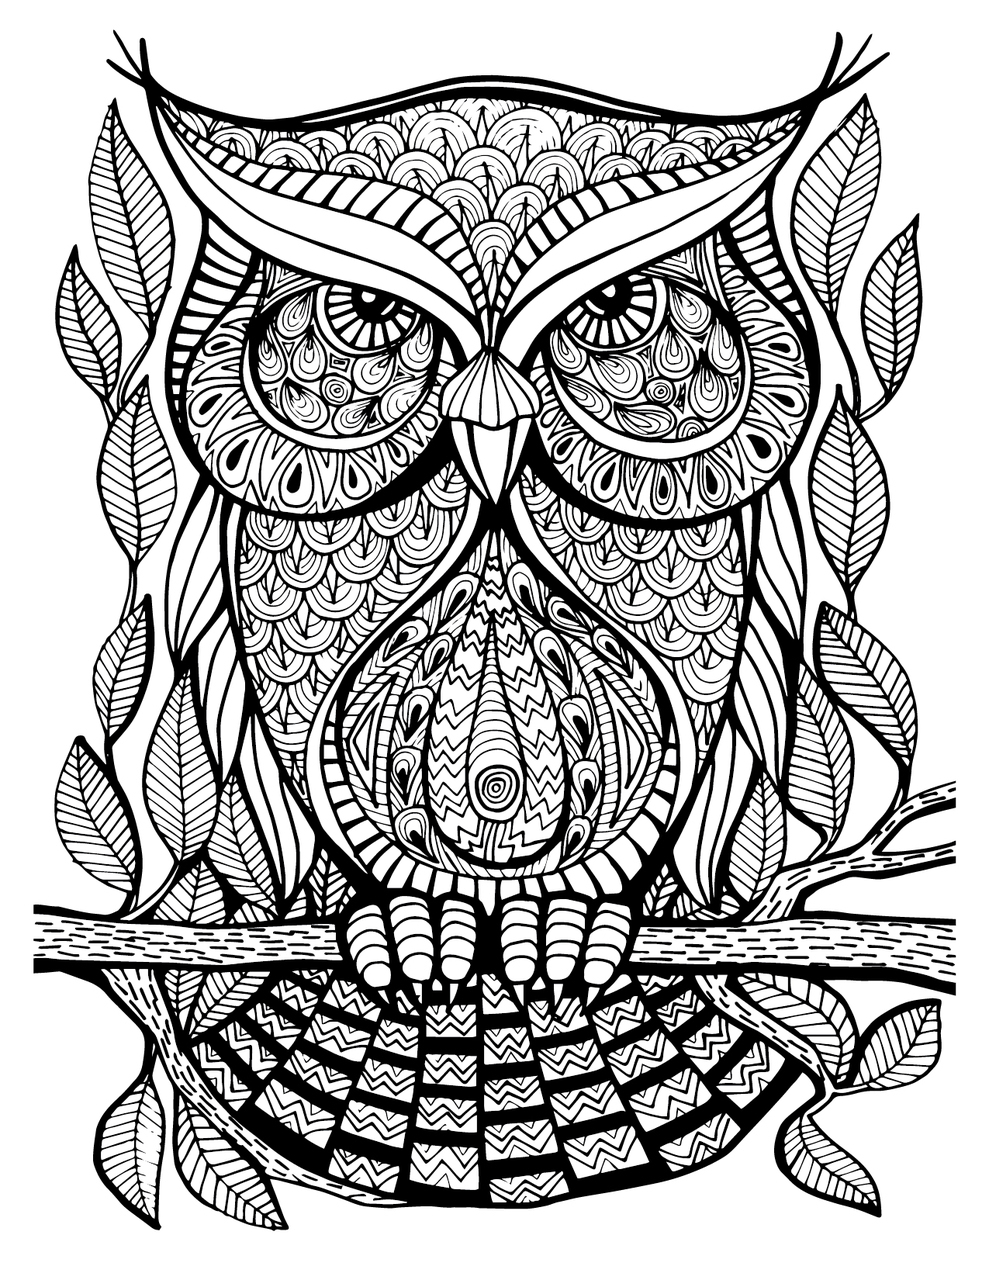 Stress relief coloring pages - Coloring Pages For Adults Stress Relief Ad Adult Stress Relief Coloring Sheets Check Out This